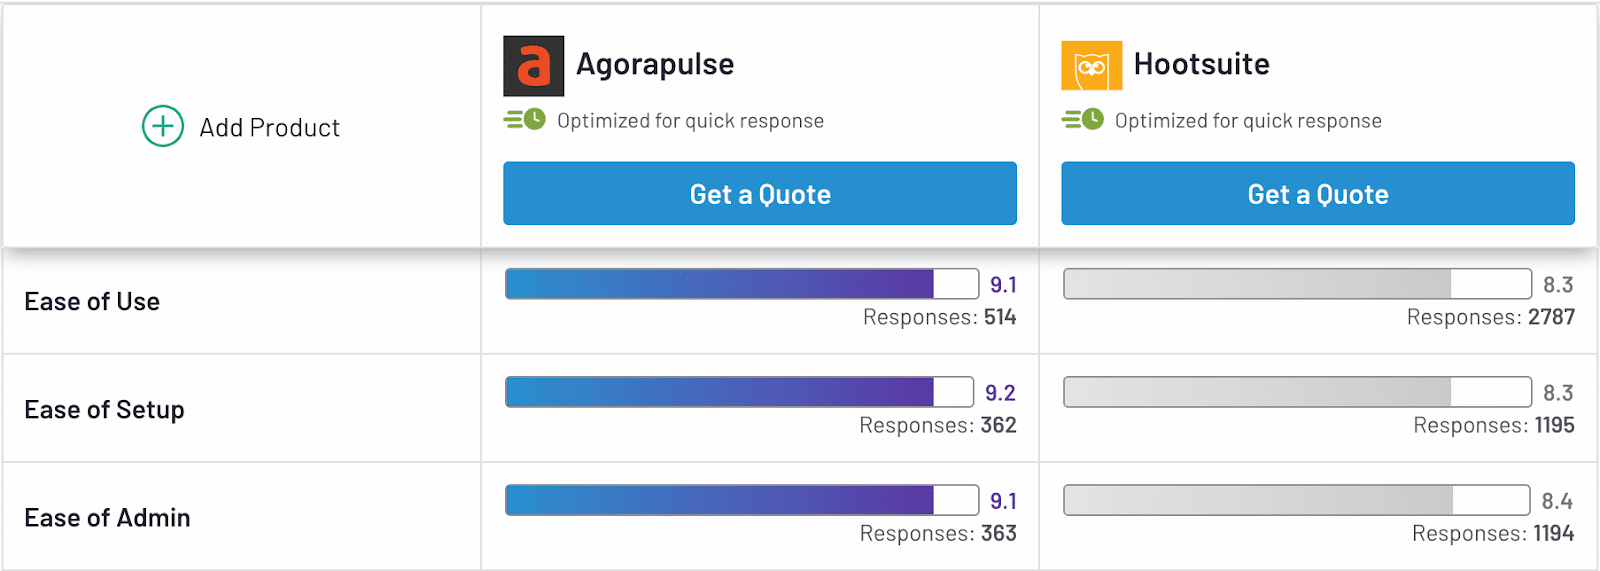 ease of use, setup, and admin reviews from agorapulse and hootsuite